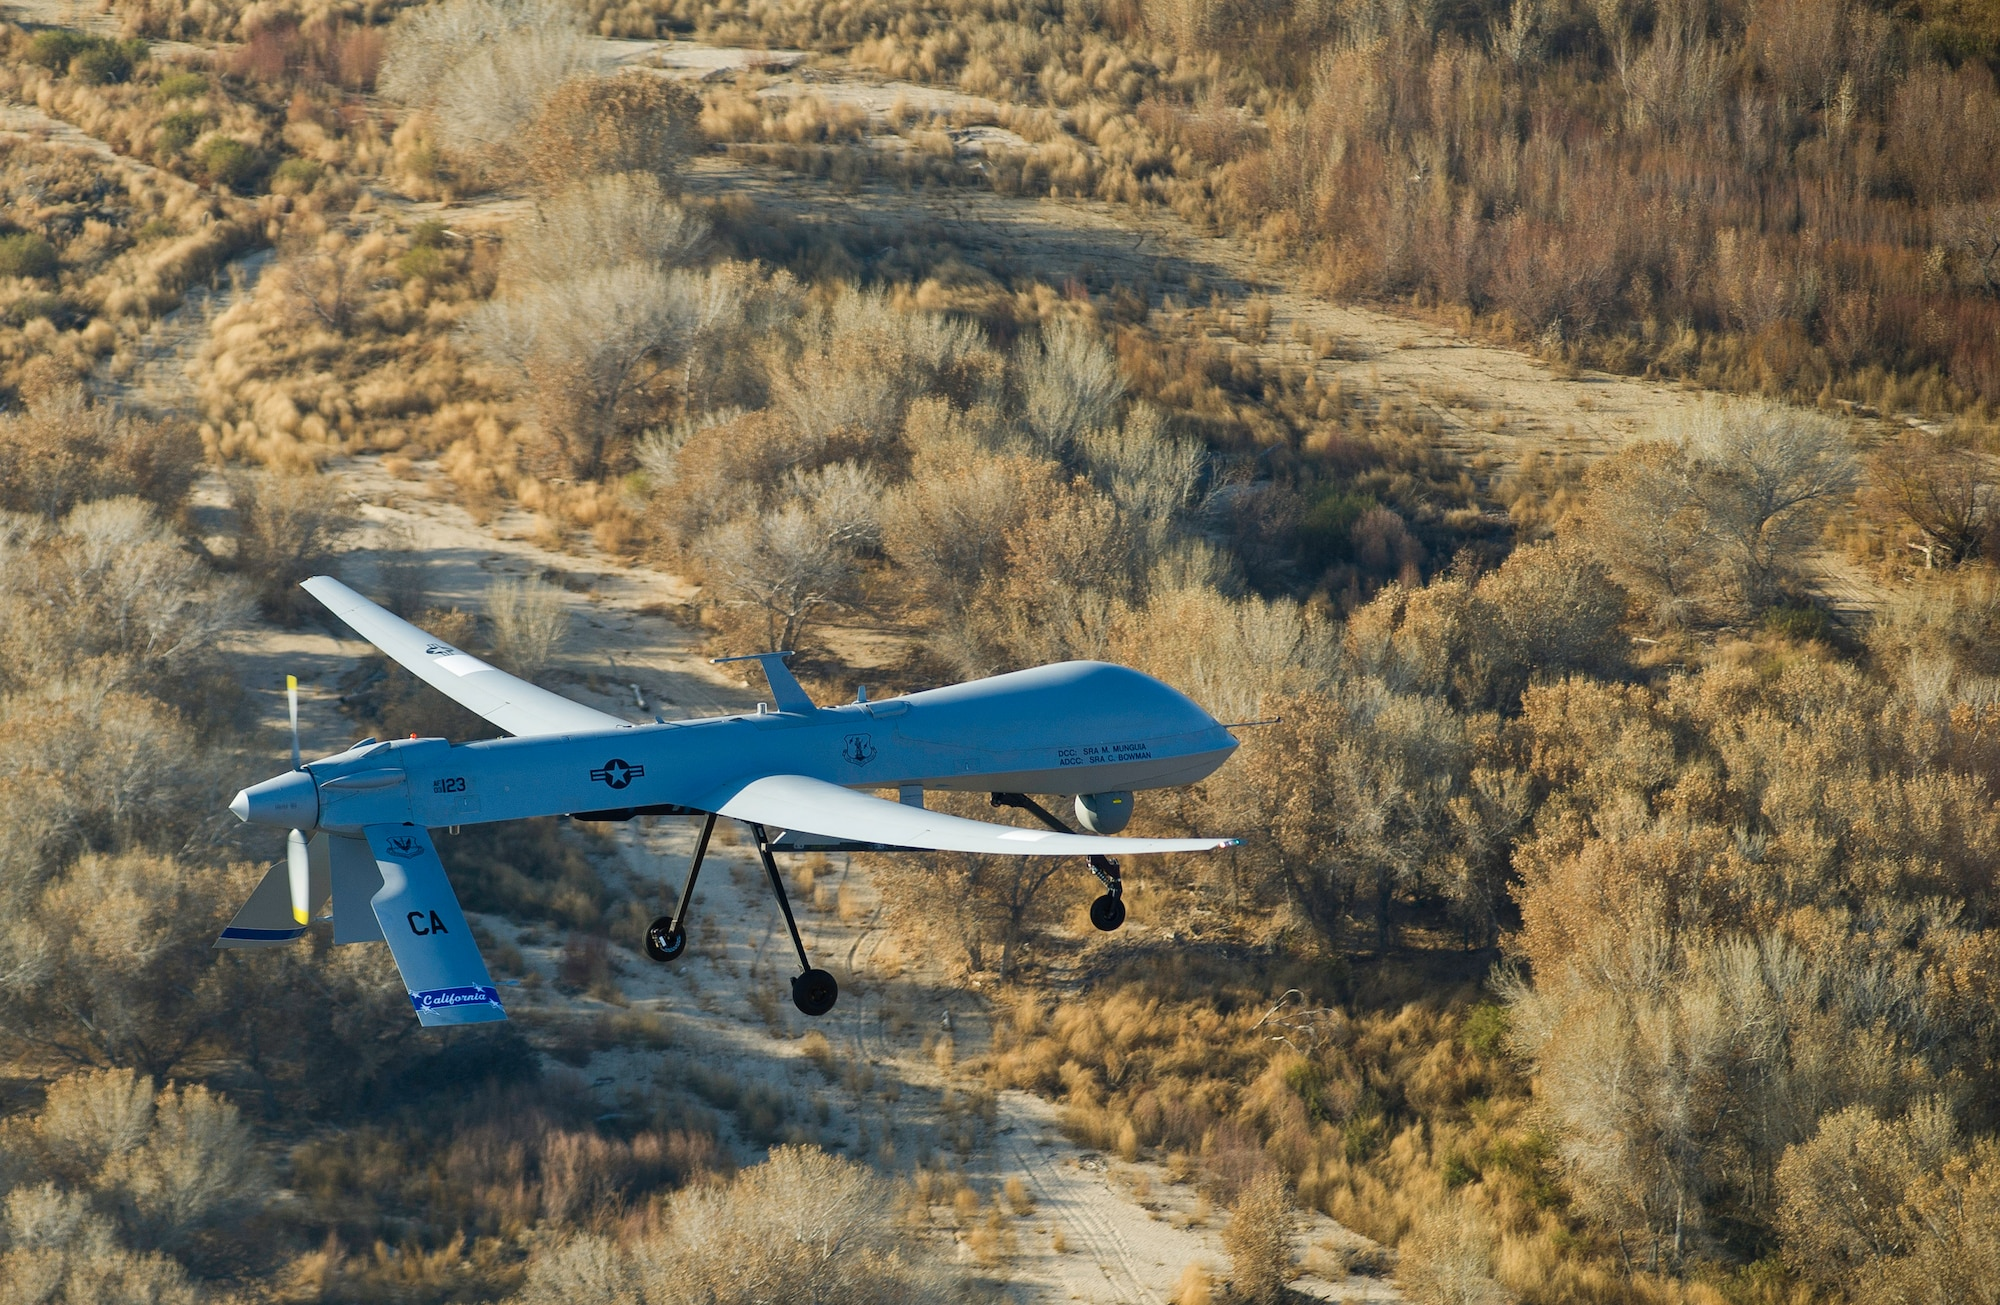 The MQ-1 Predator assigned to the 163rd Reconnaissance Wing is in flight